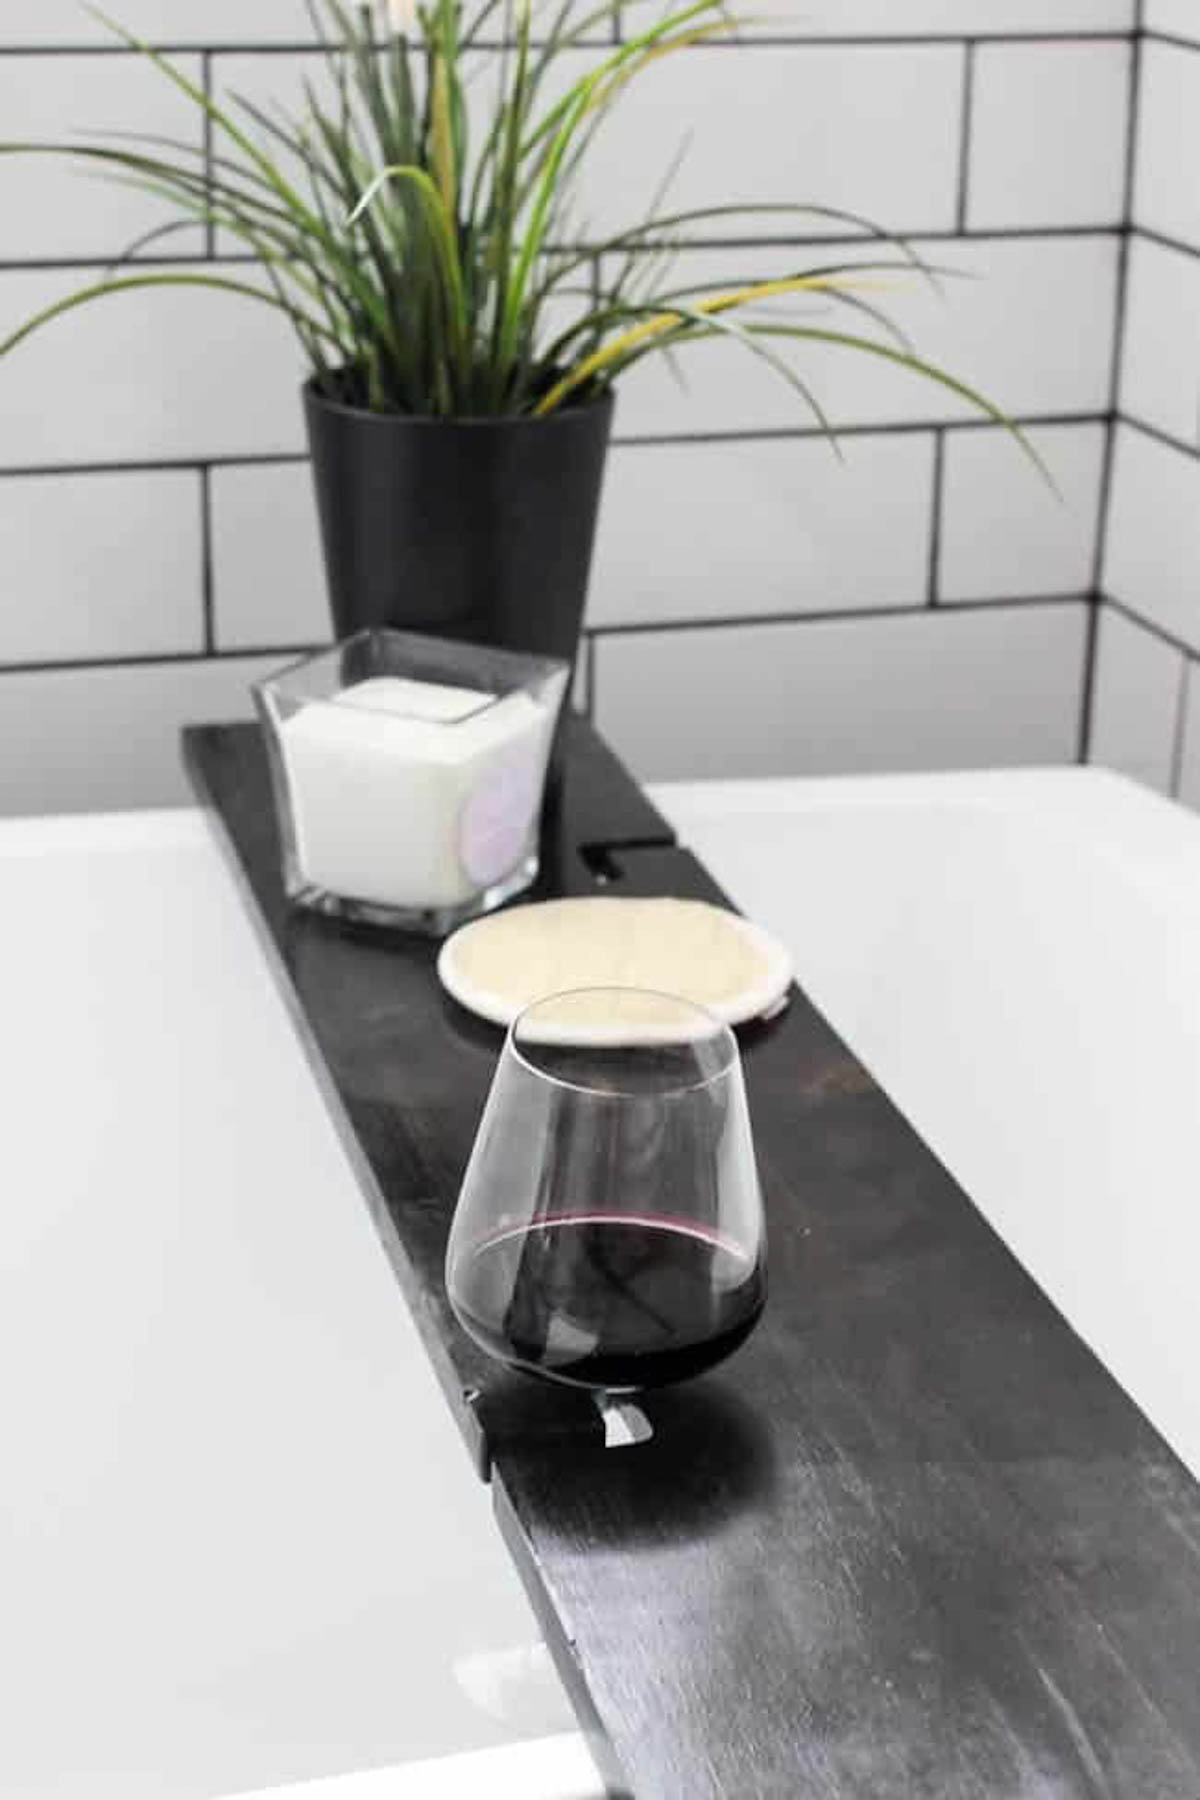 Finished bath tray on bath tub with wine glass, candle, and plant